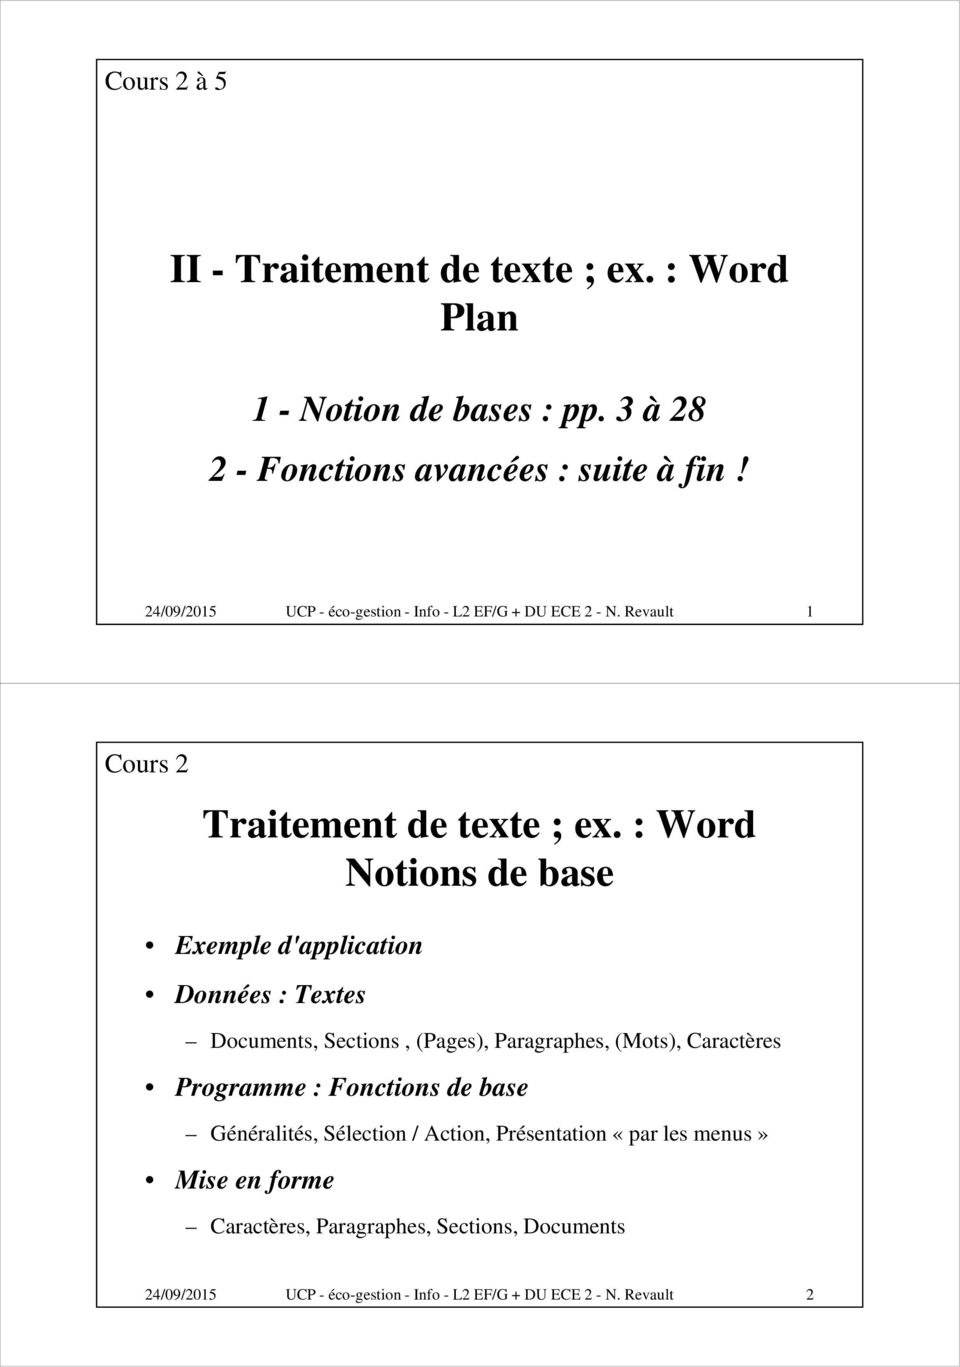 : Word Notions de base Exemple d'application Données : Textes Documents, Sections, (Pages), Paragraphes, (Mots), Caractères Programme :